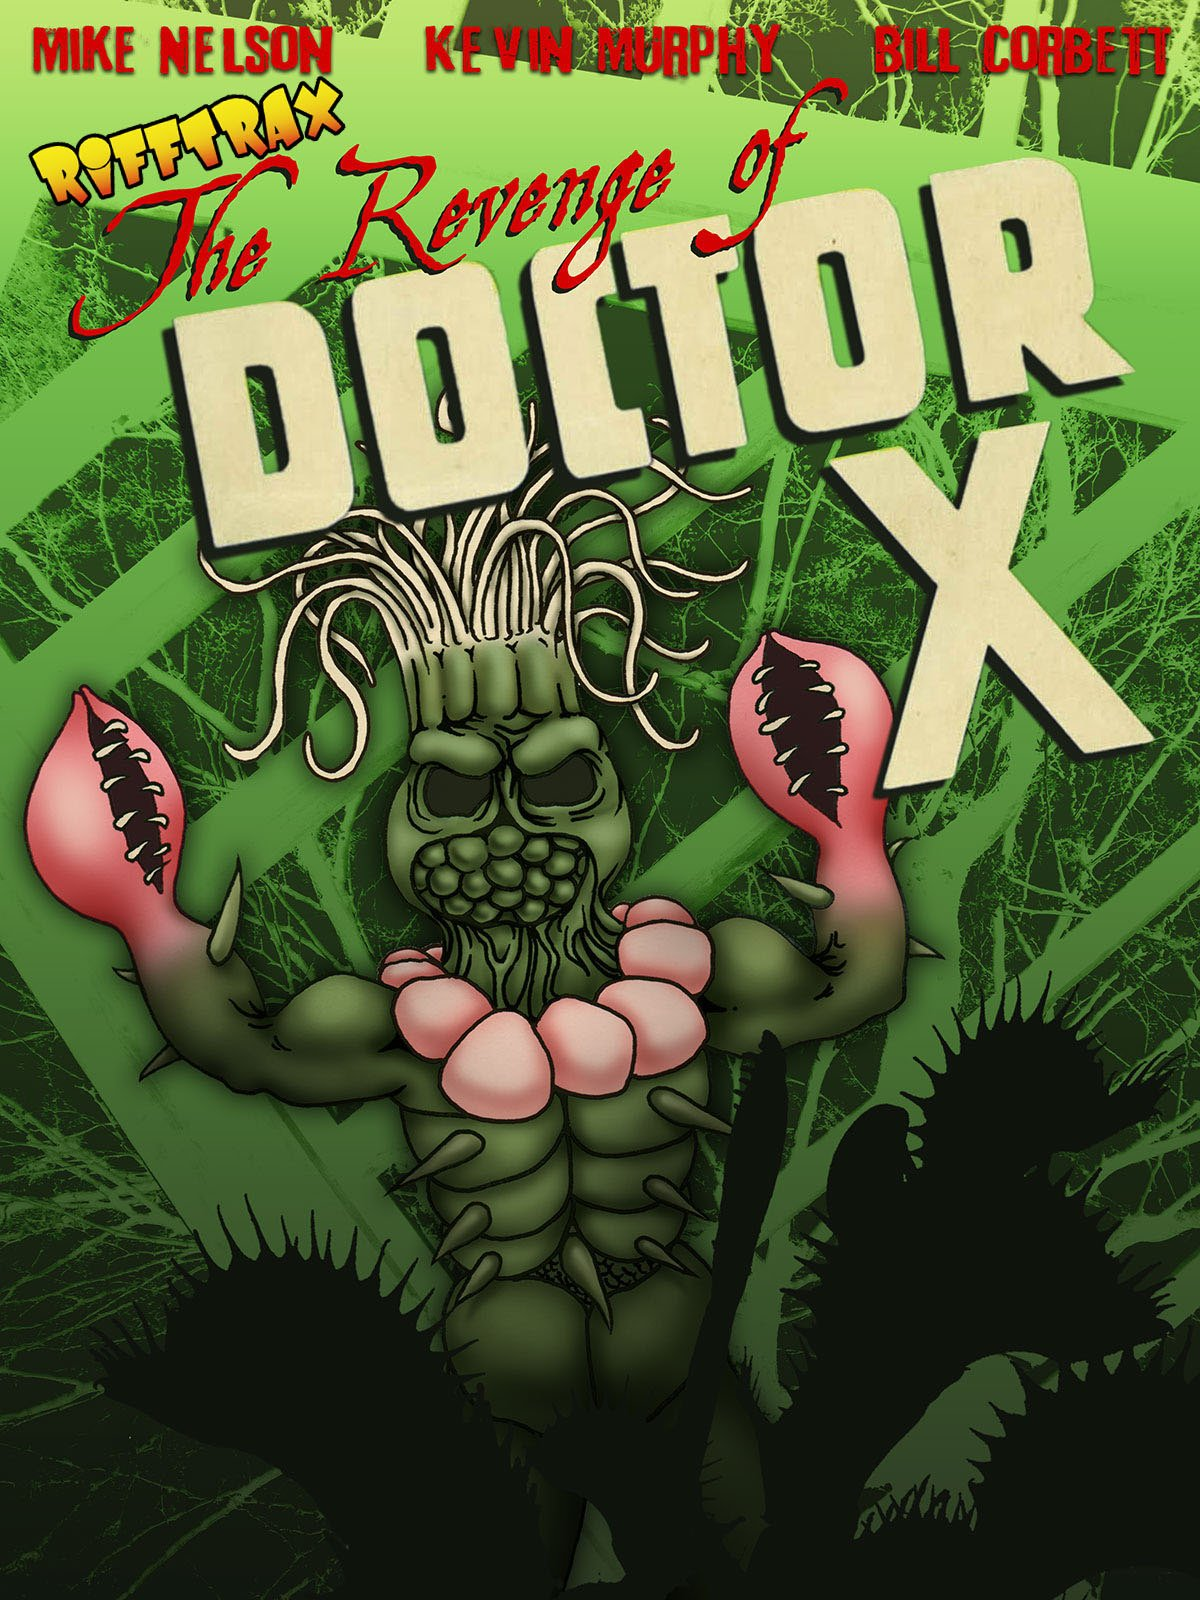 RiffTrax: The Revenge Of Doctor X